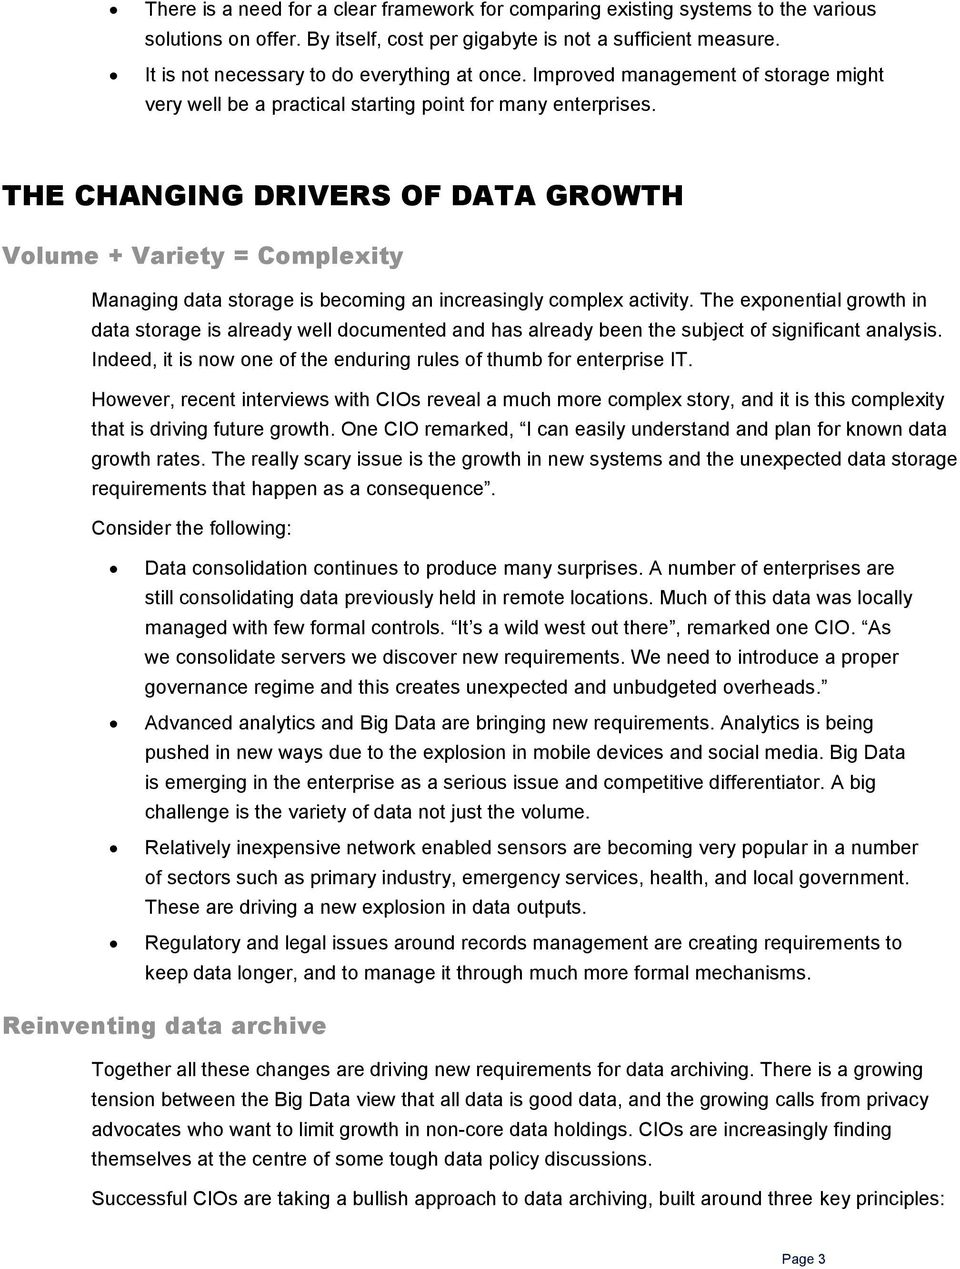 THE CHANGING DRIVERS OF DATA GROWTH Volume + Variety = Complexity Managing data storage is becoming an increasingly complex activity.